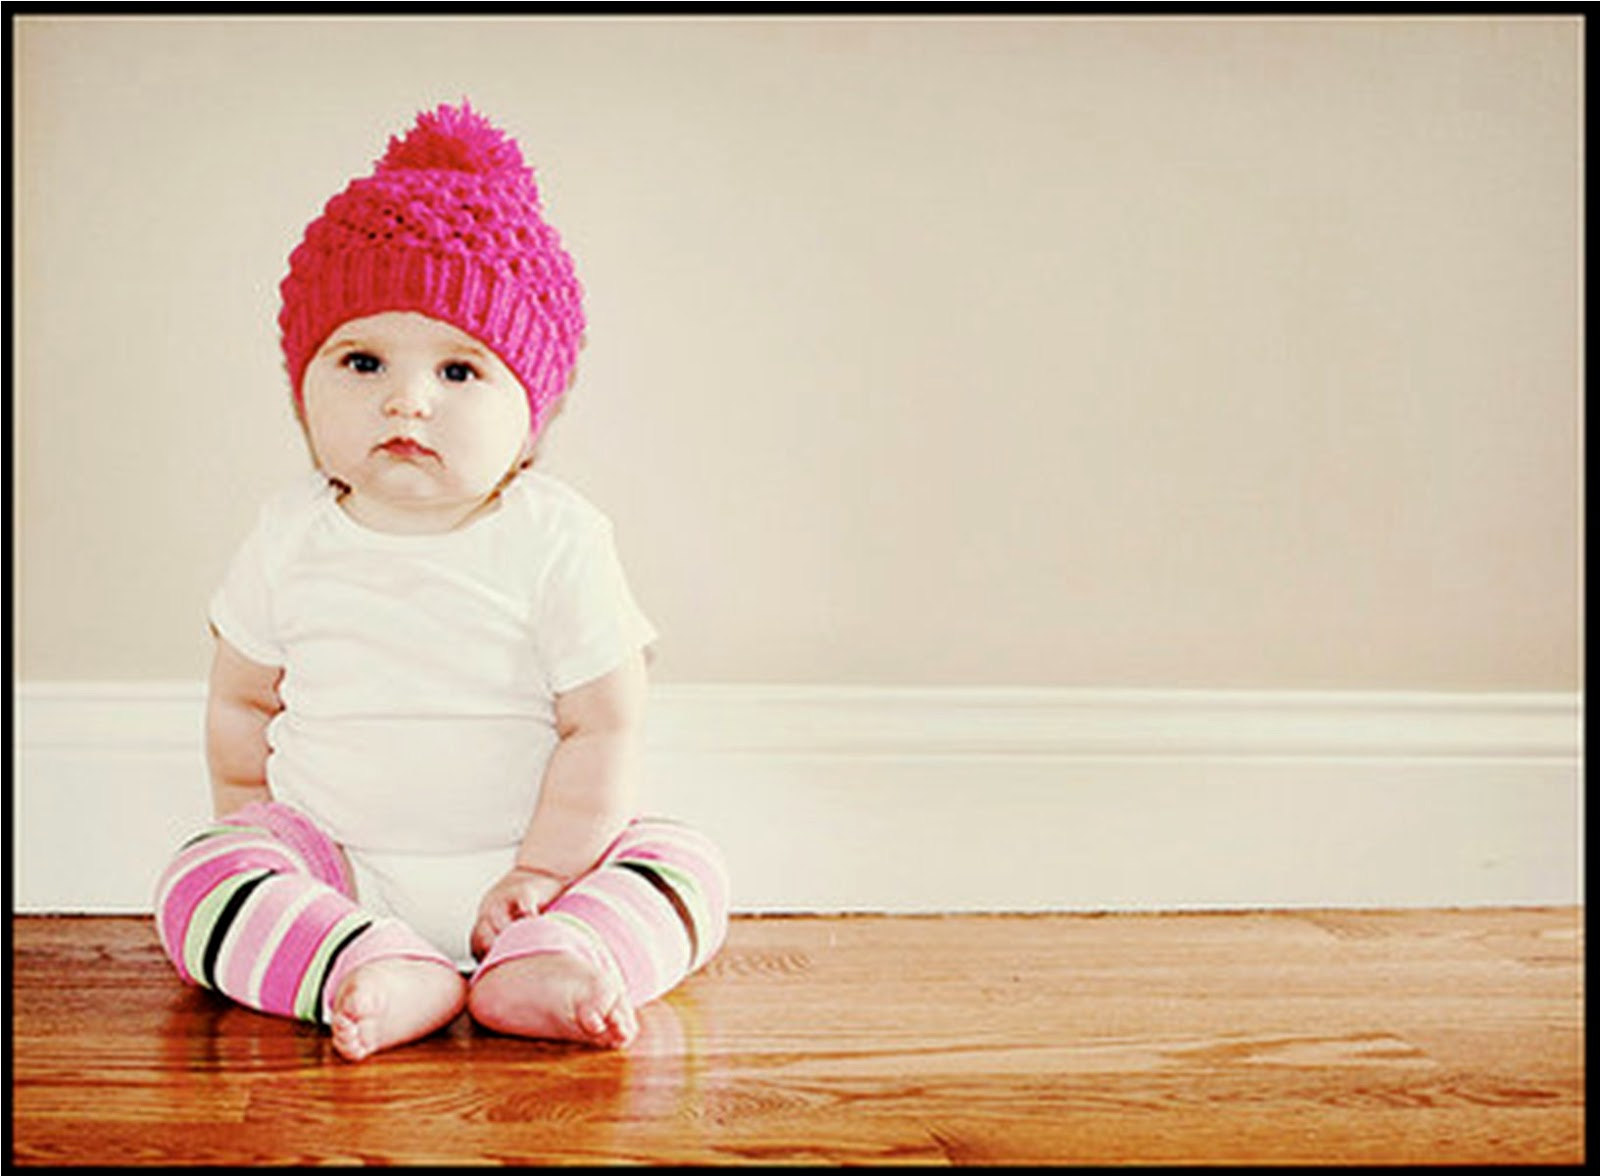 Baby Girl Wallpaper, HDQ Baby Girl Images Collection for Desktop